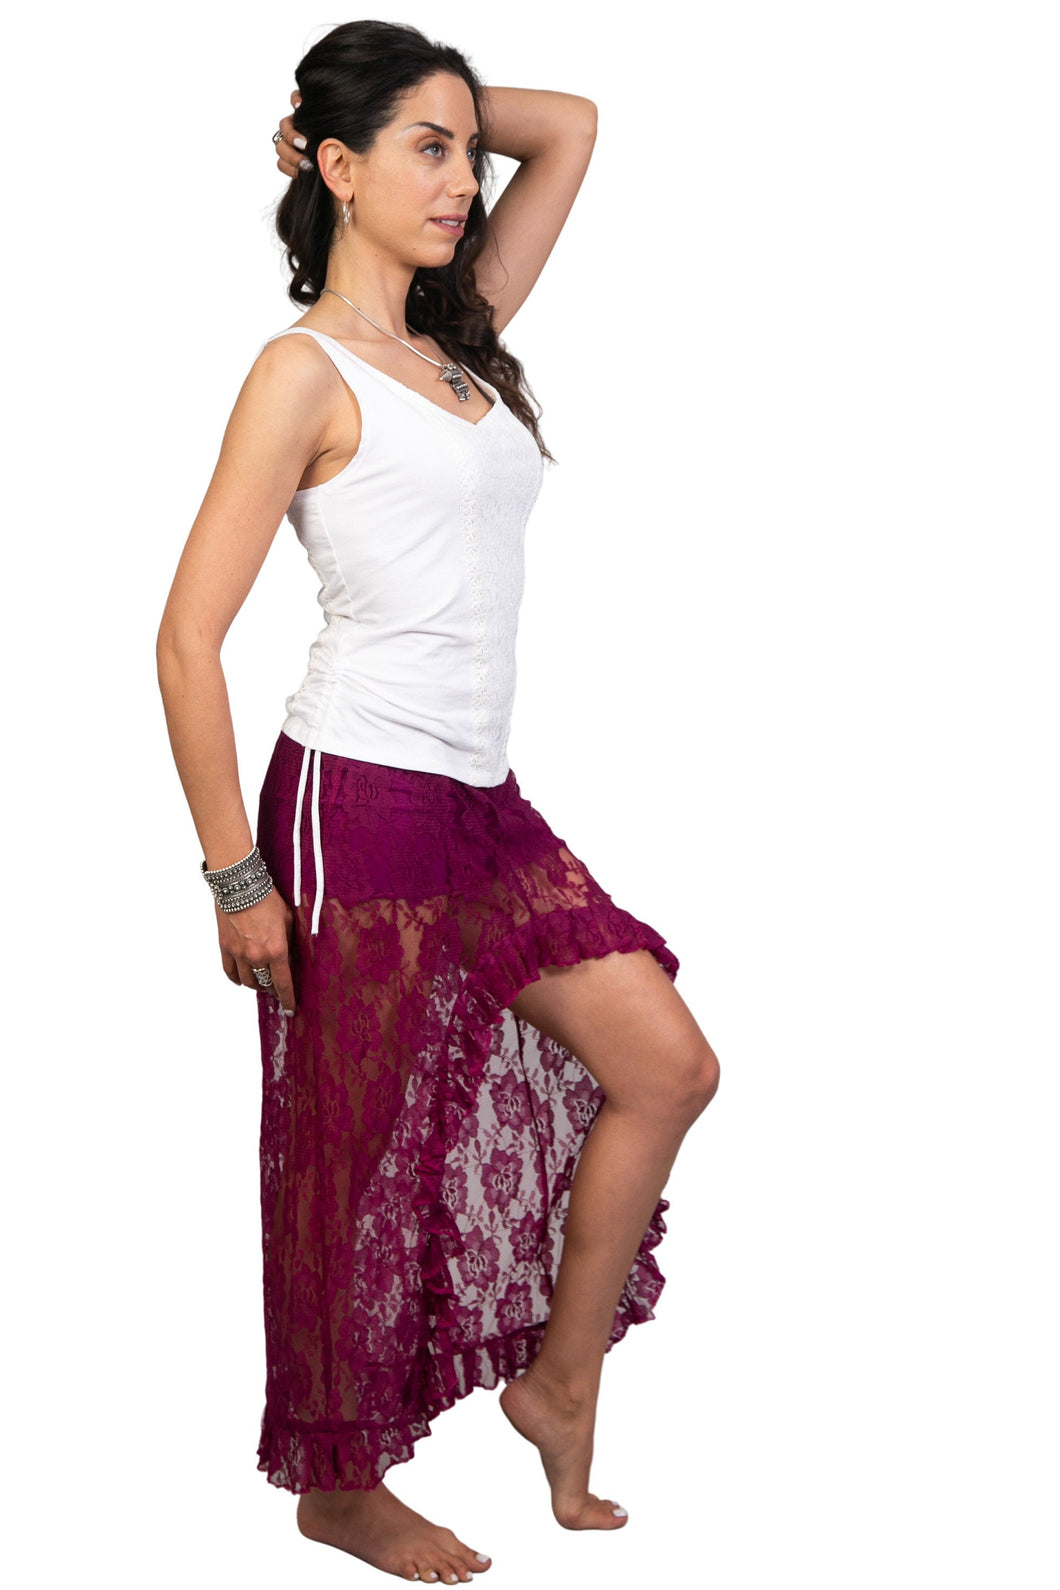 Unique Lace Skirt for Women | Festival Asymmetrical Skirt | Gypsystyle Clothing for Burning Man Festivals, Tribal Fusion Bellydance & More